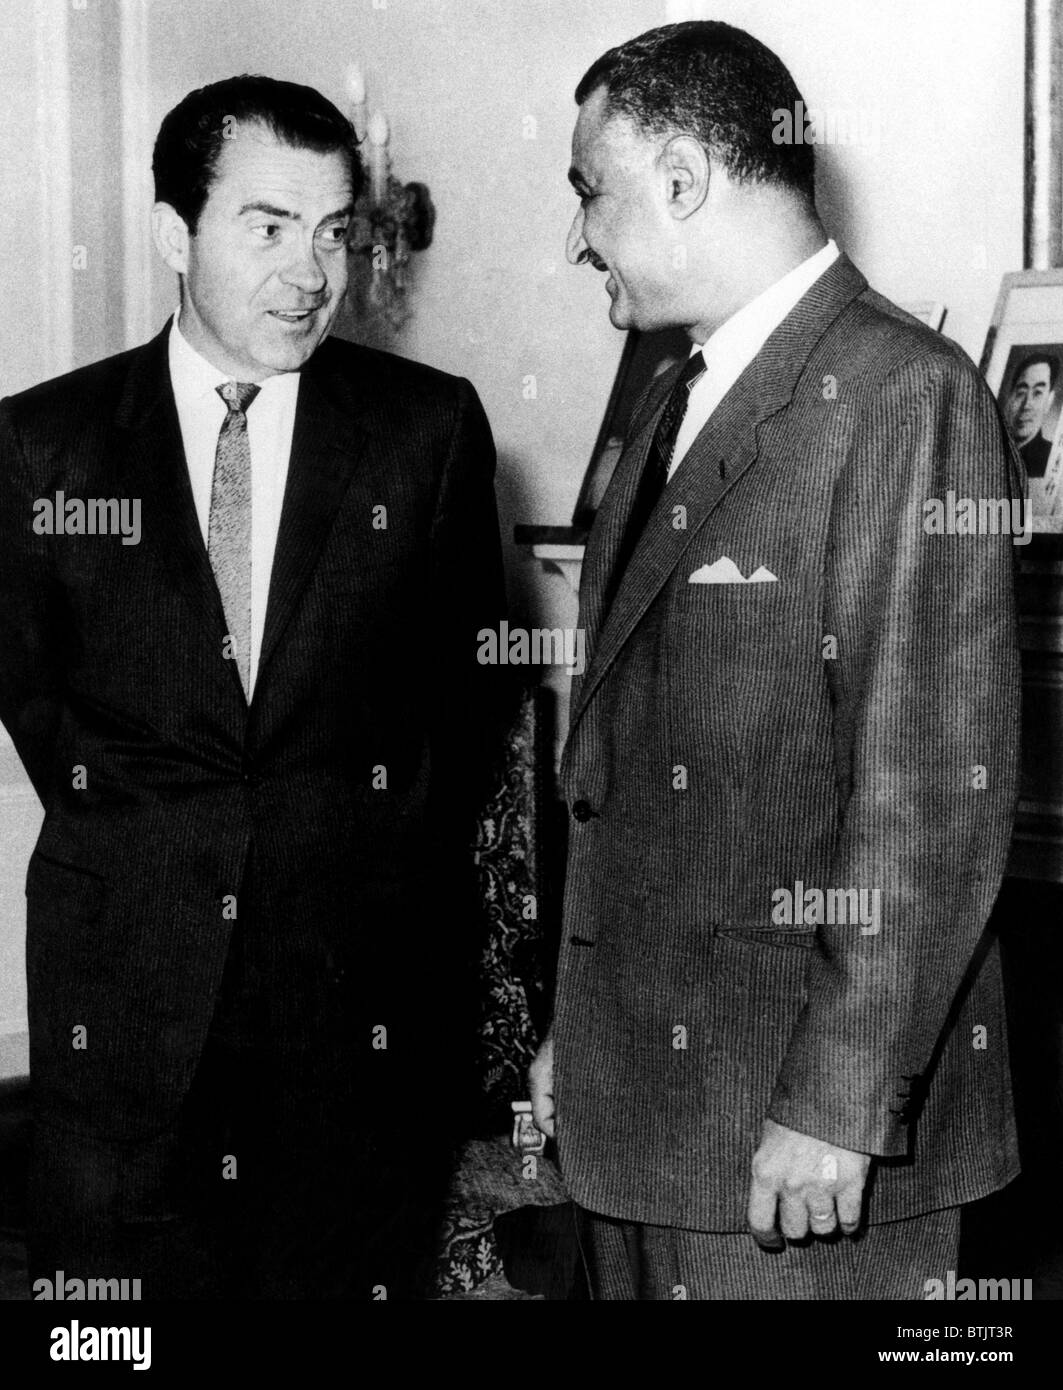 U.S. President Richard Nixon and the President of Egypt Gamal Abdel Nasser, meeting in Cairo, Egypt, 1970. - Stock Image